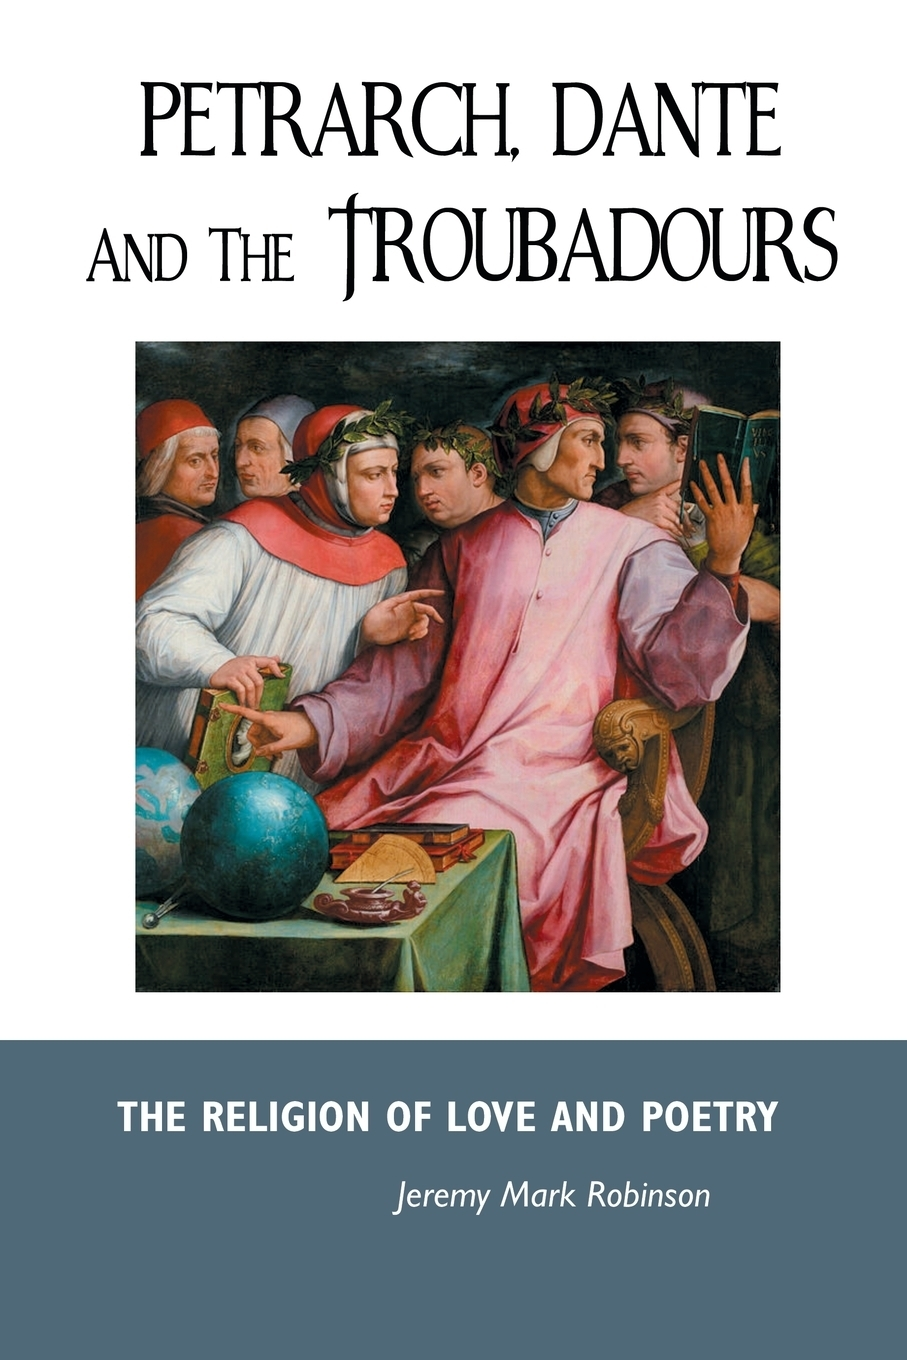 Jeremy  Mark Robinson. PETRARCH, DANTE AND THE TROUBADOURS. THE RELIGION OF LOVE AND POETRY